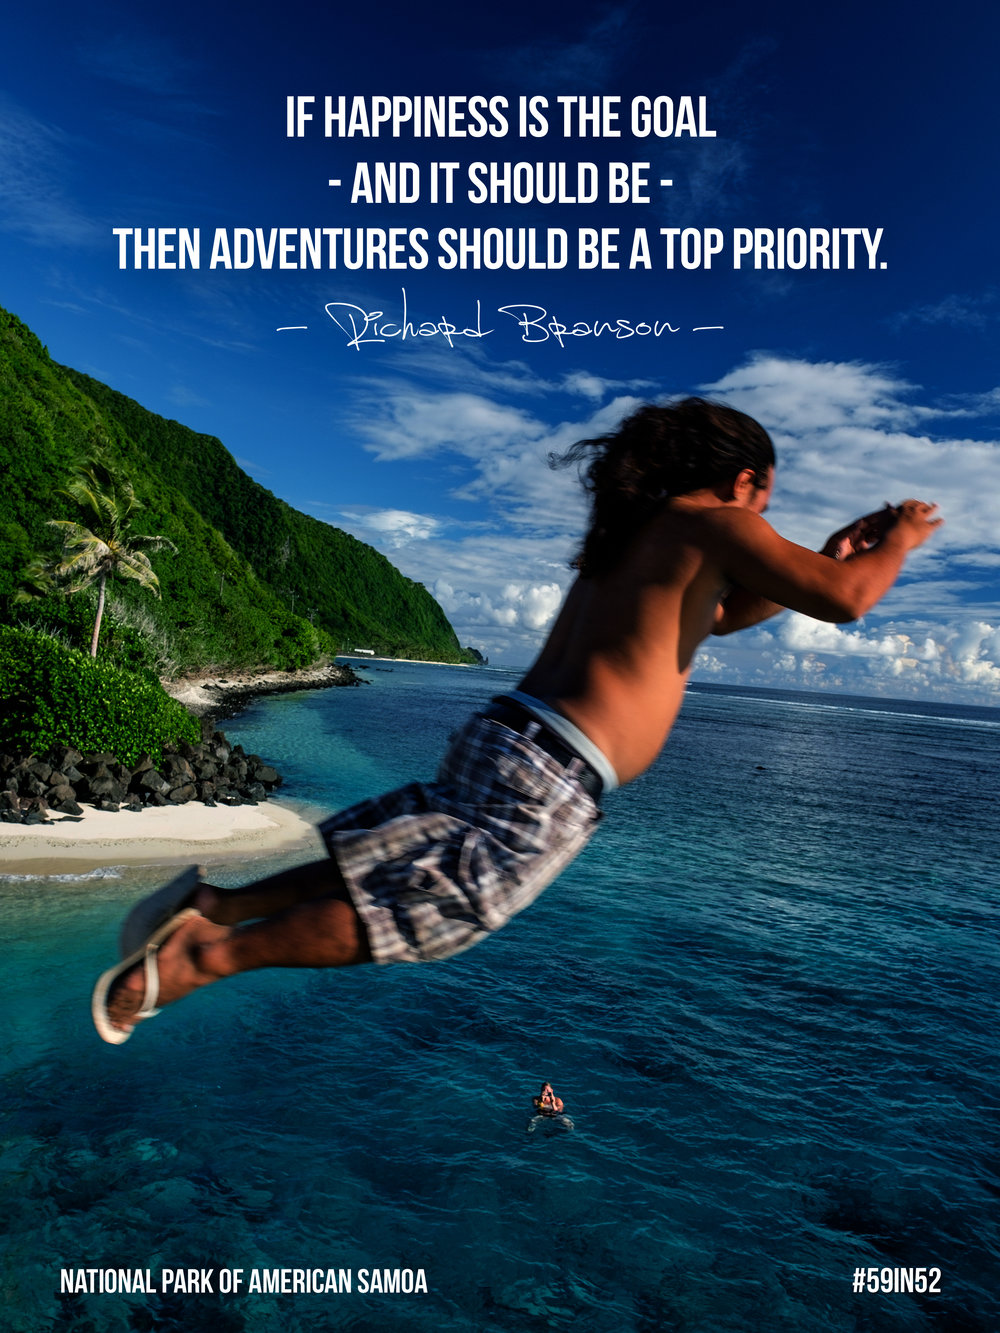 """If happiness is the goal - and it should be - then advnetures should be a top priority."" - Richard Branson"